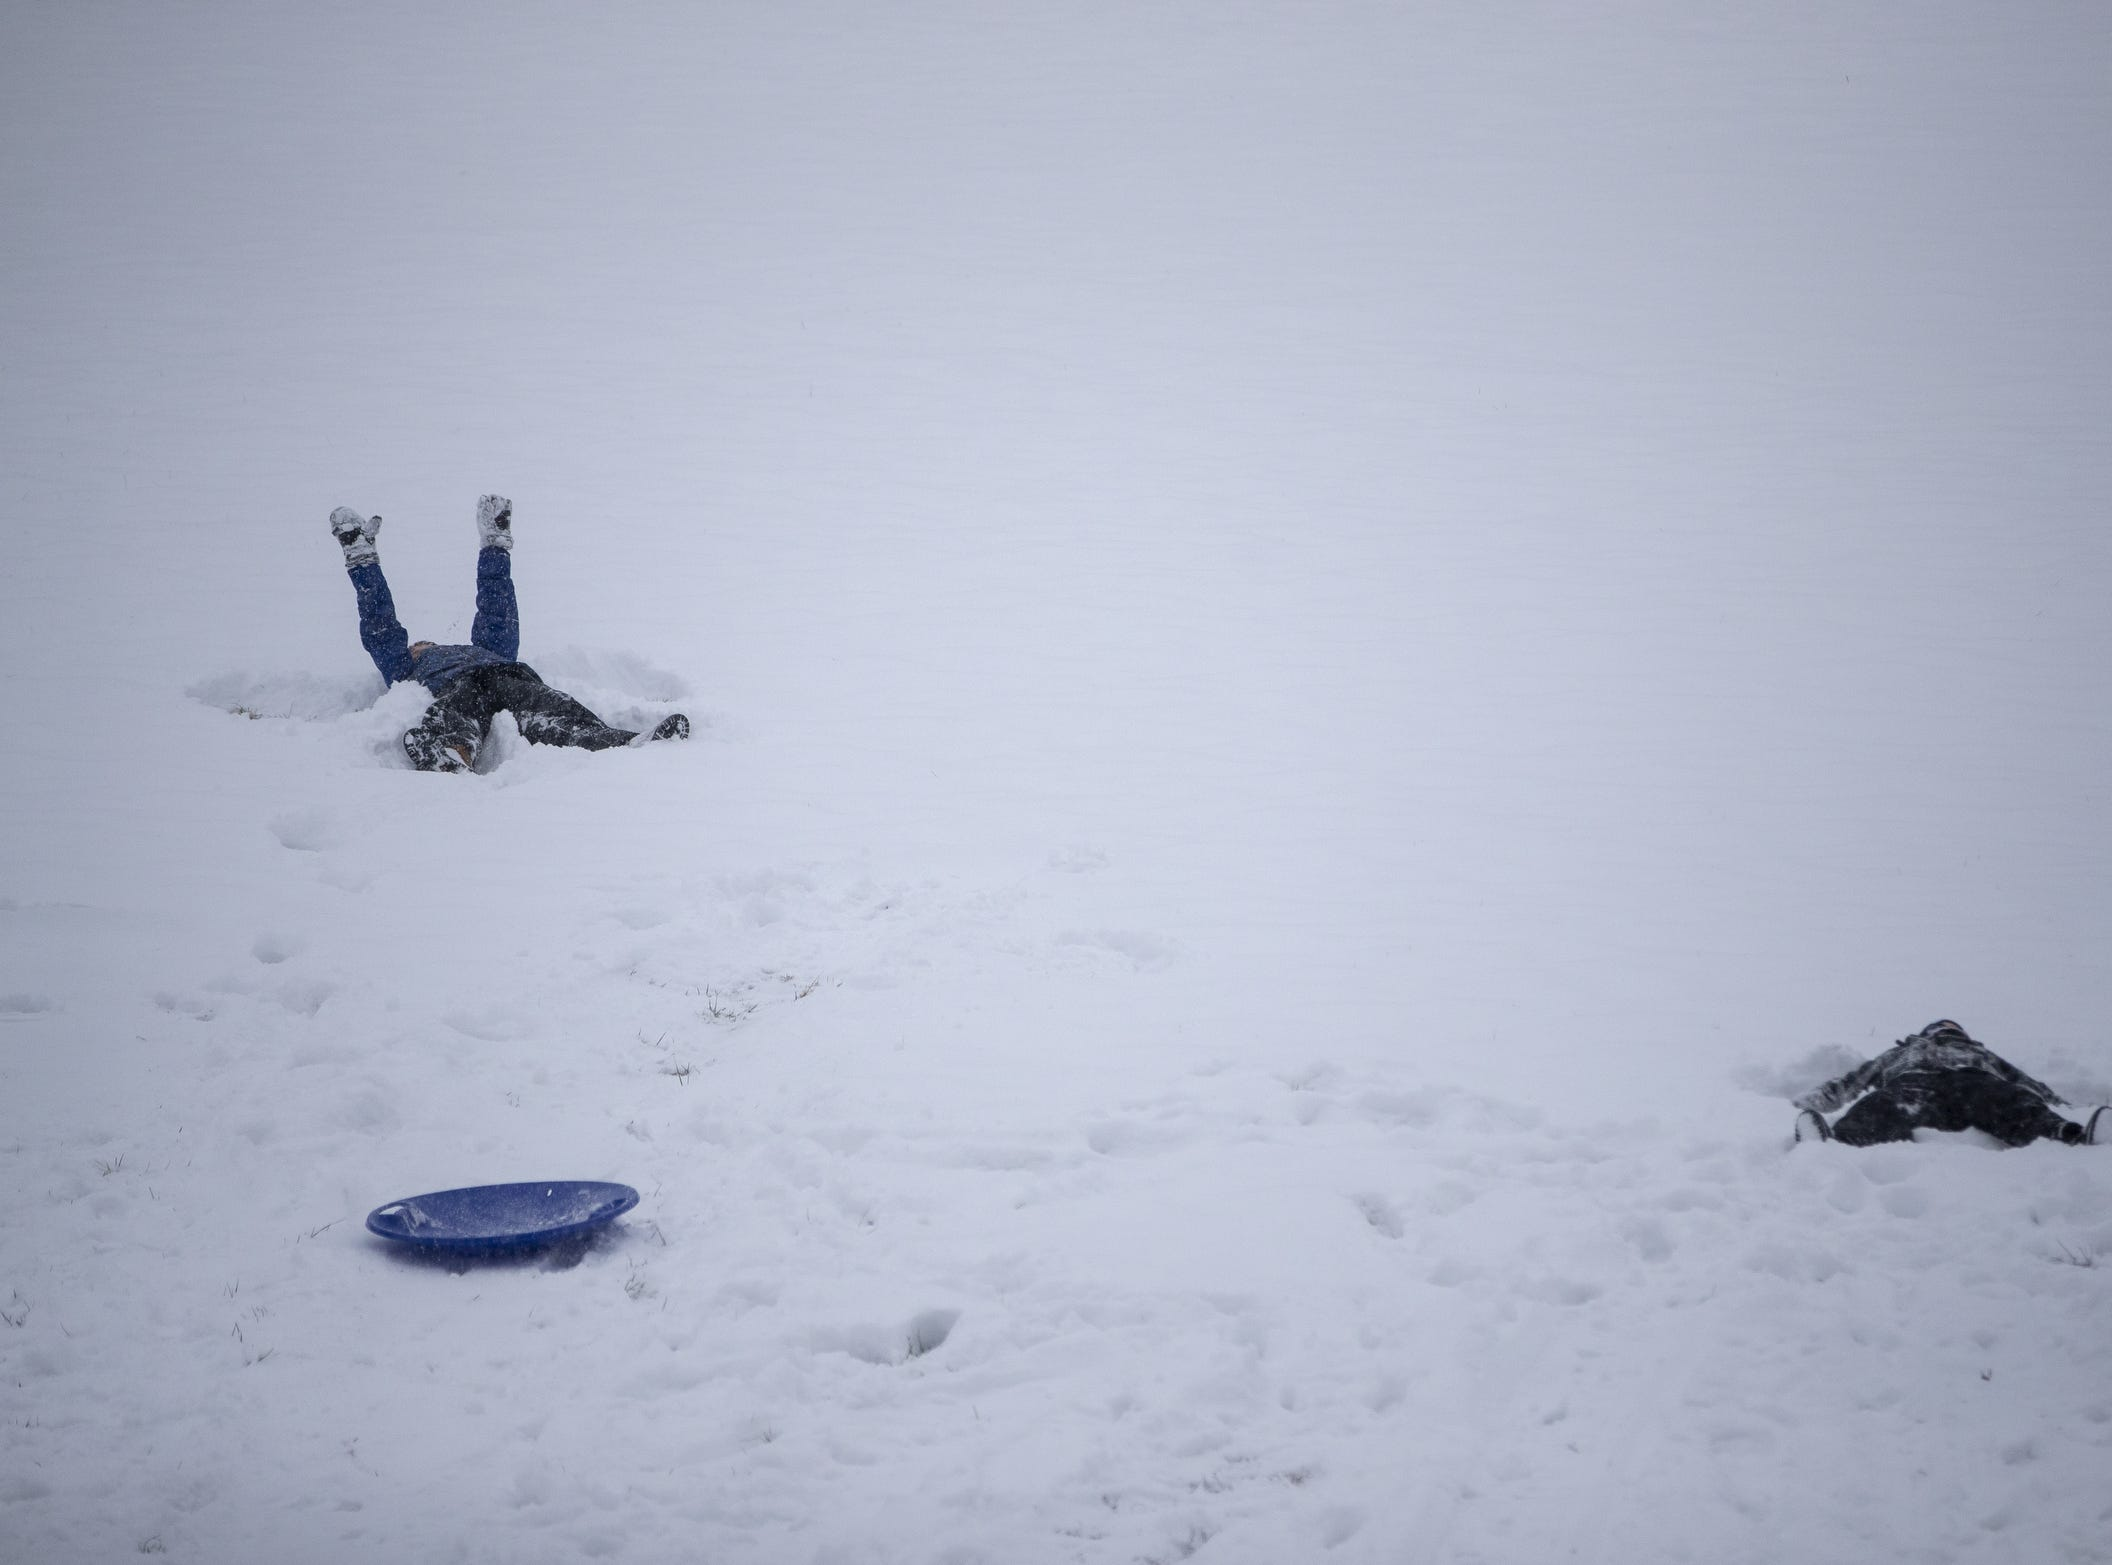 Kids make snow angels in Ellenberger Park on a day where 5-7 inches of snow is expected to fall in Central Indiana, Indianapolis, Saturday, Jan. 12, 2019.